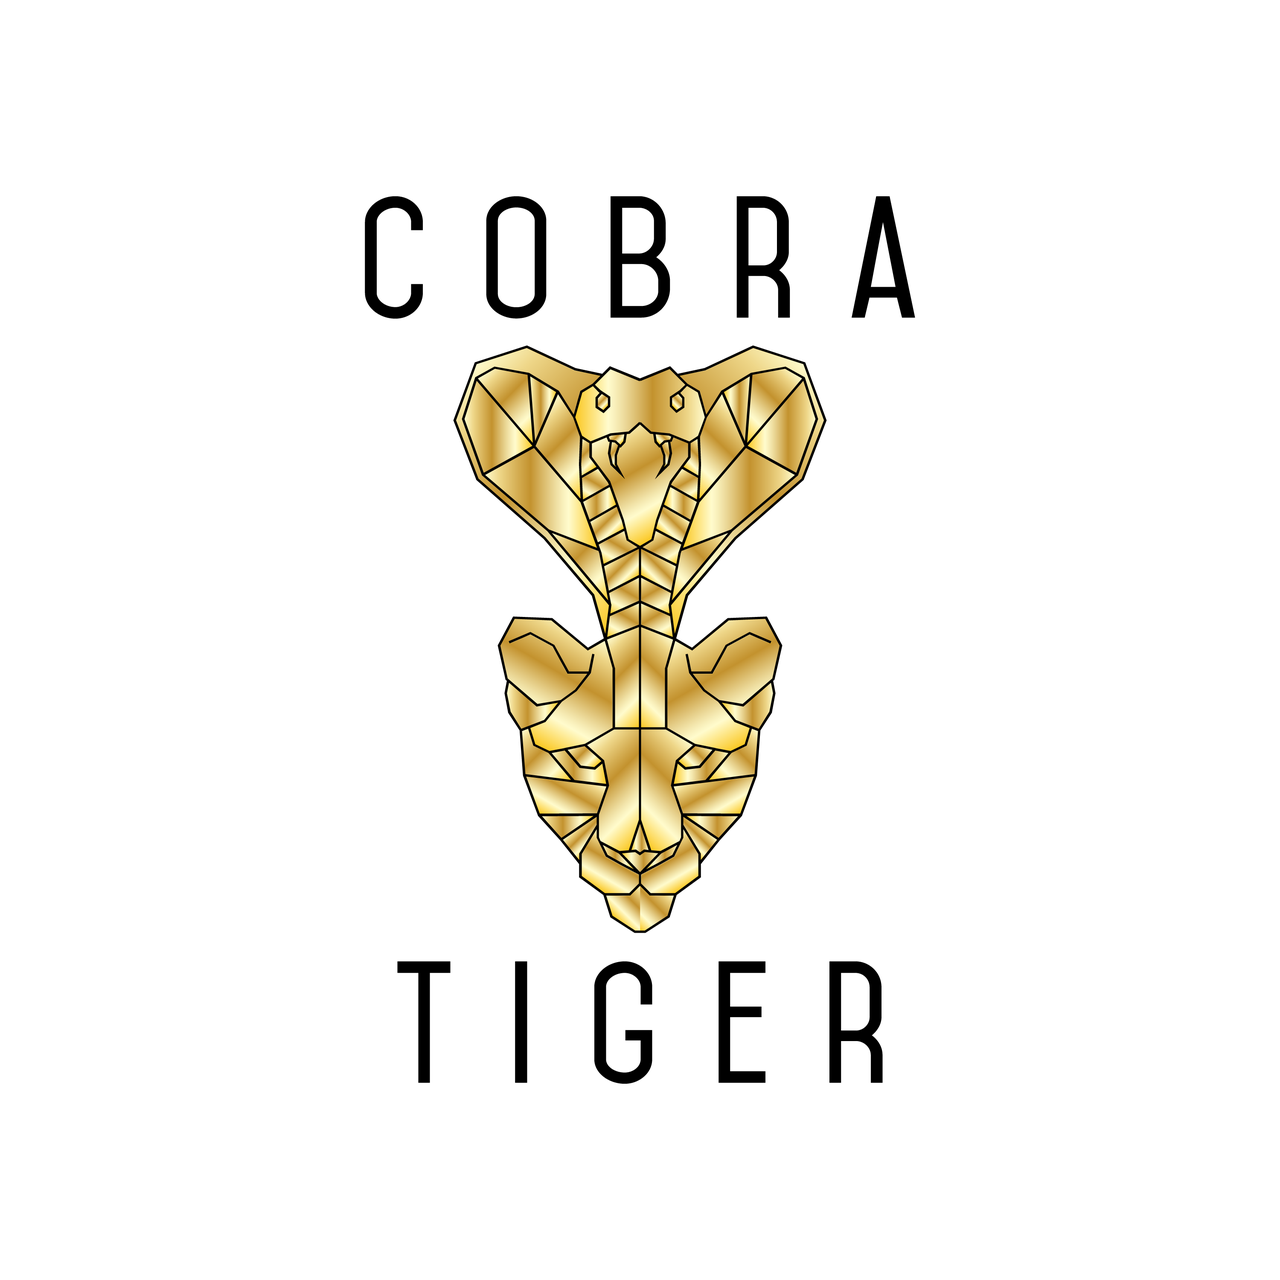 cobra tiger logo gold.png